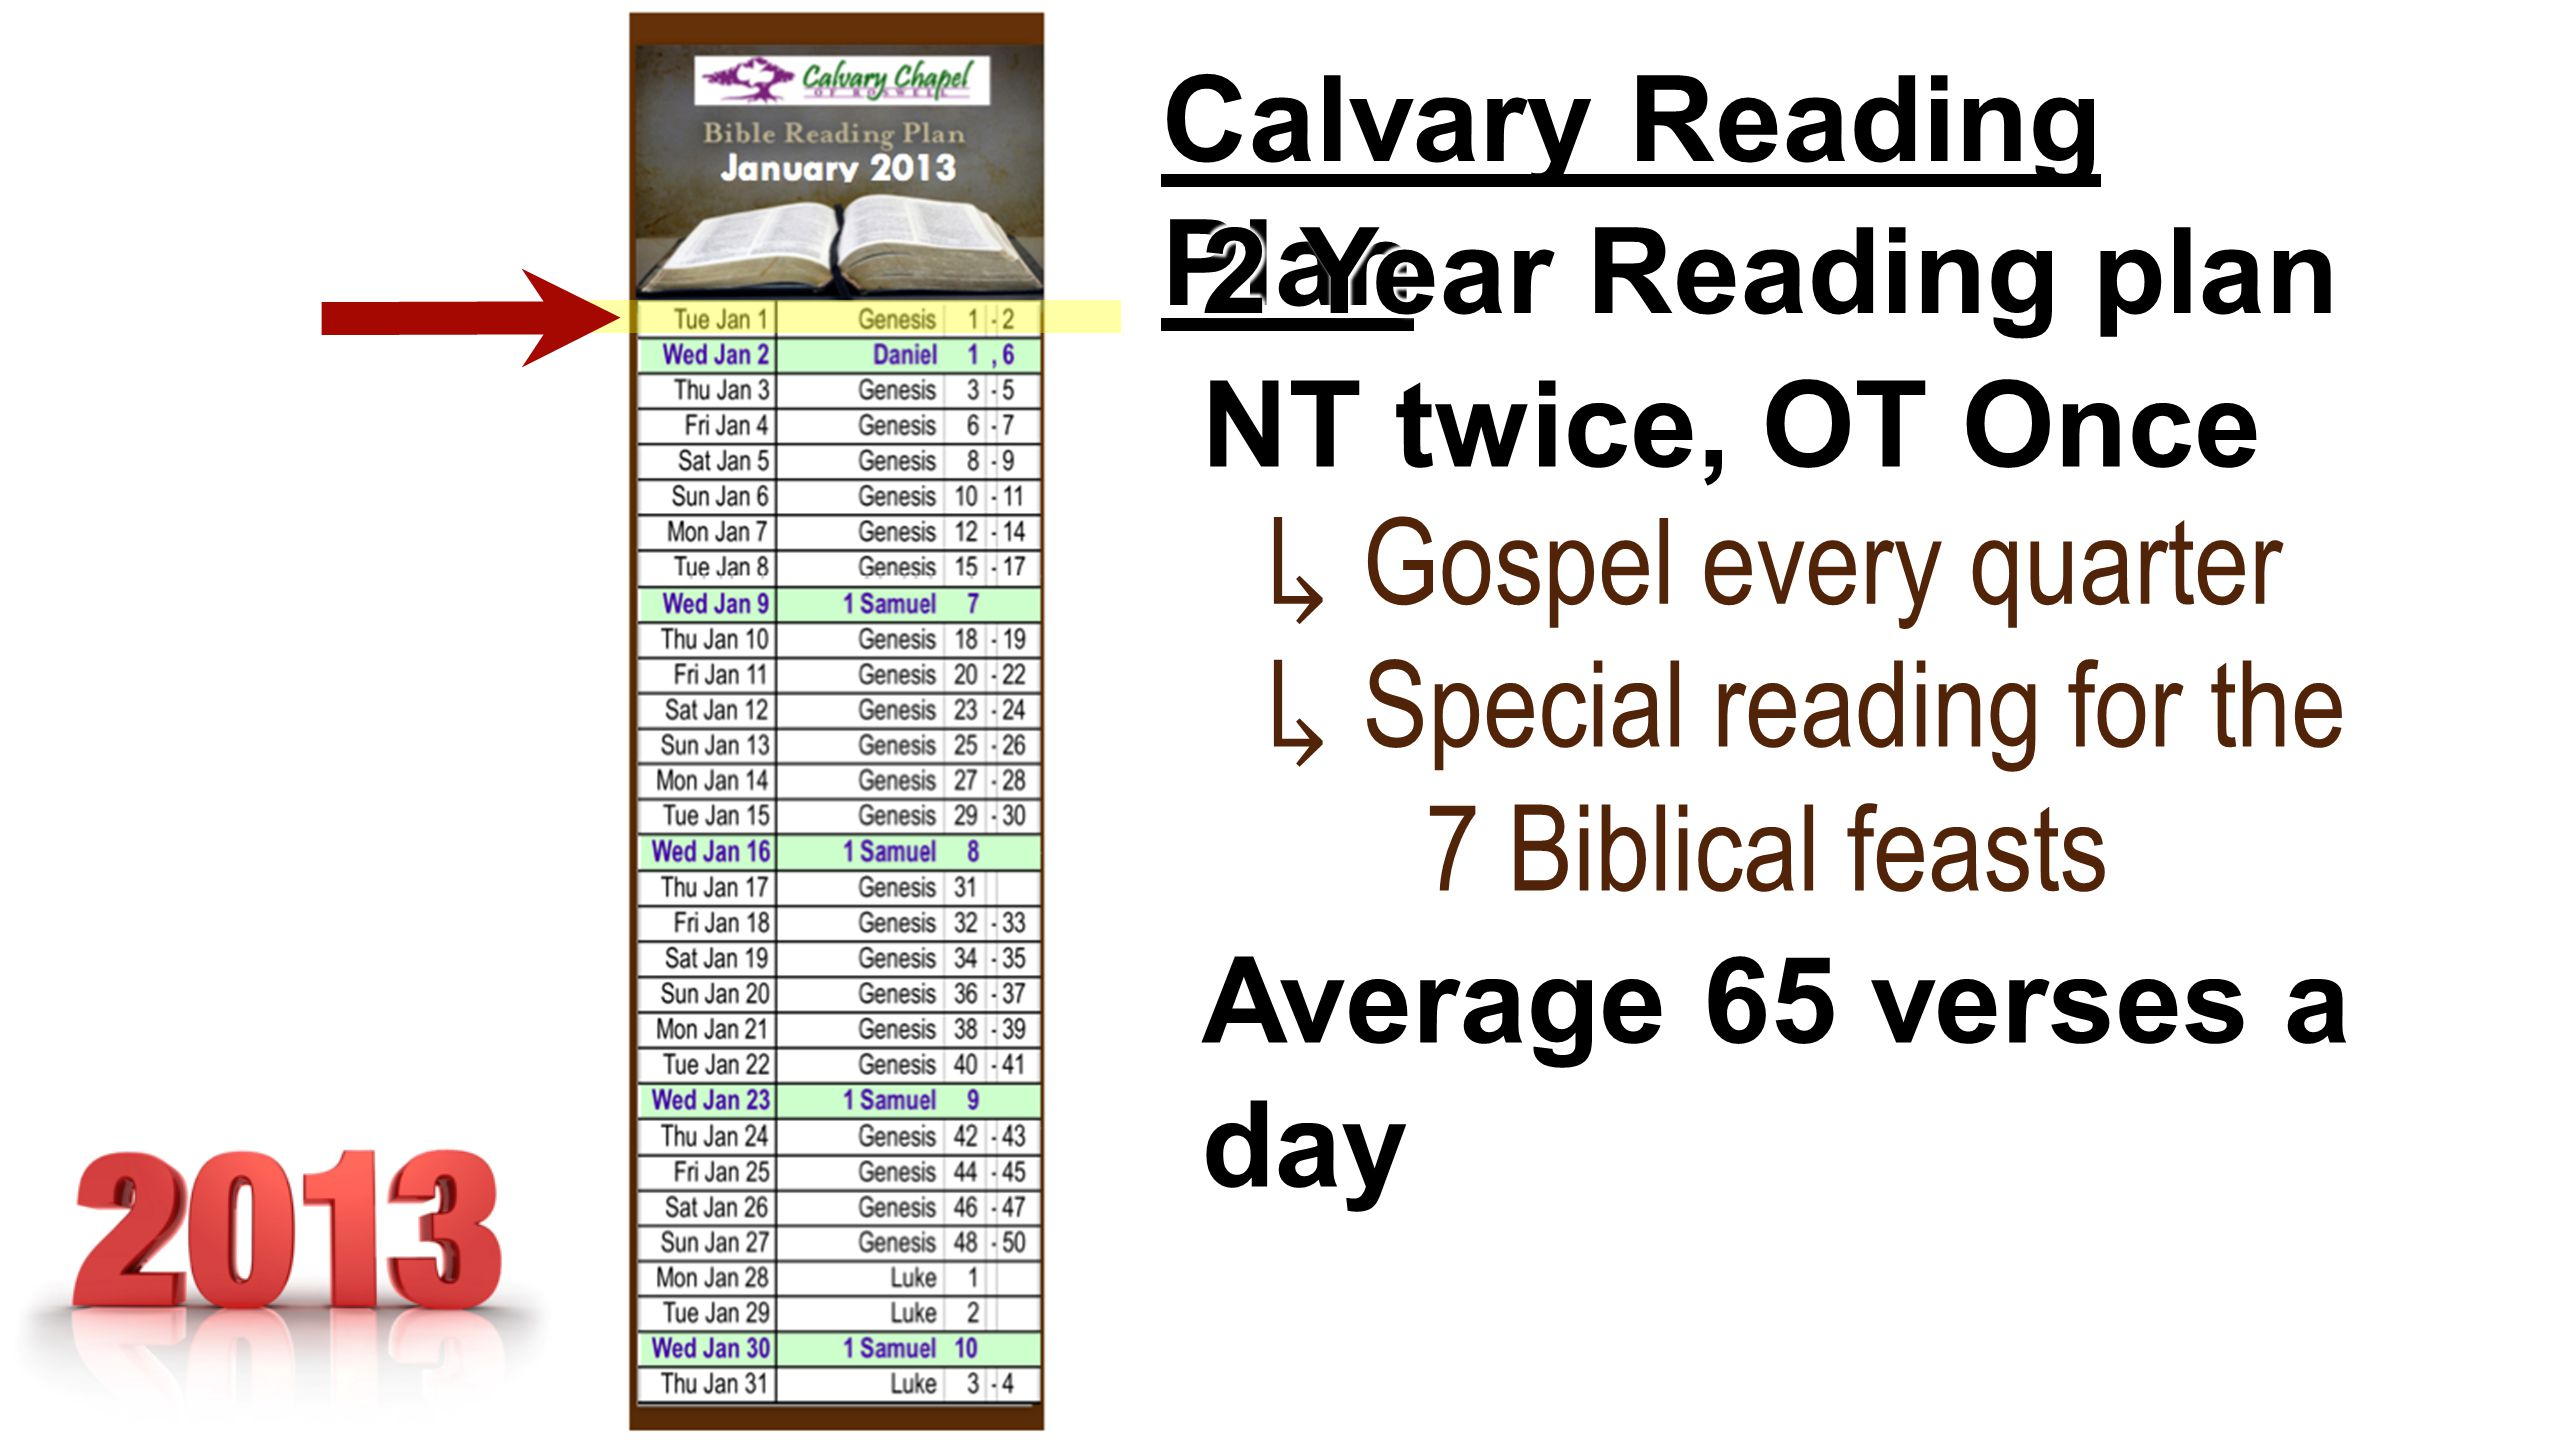 Calvary Reading Plan 2 Year Reading plan NT twice, OT Once ↳ Gospel every quarter ↳ Special reading for the 7 Biblical feasts 7 Biblical feasts ↳ Spec